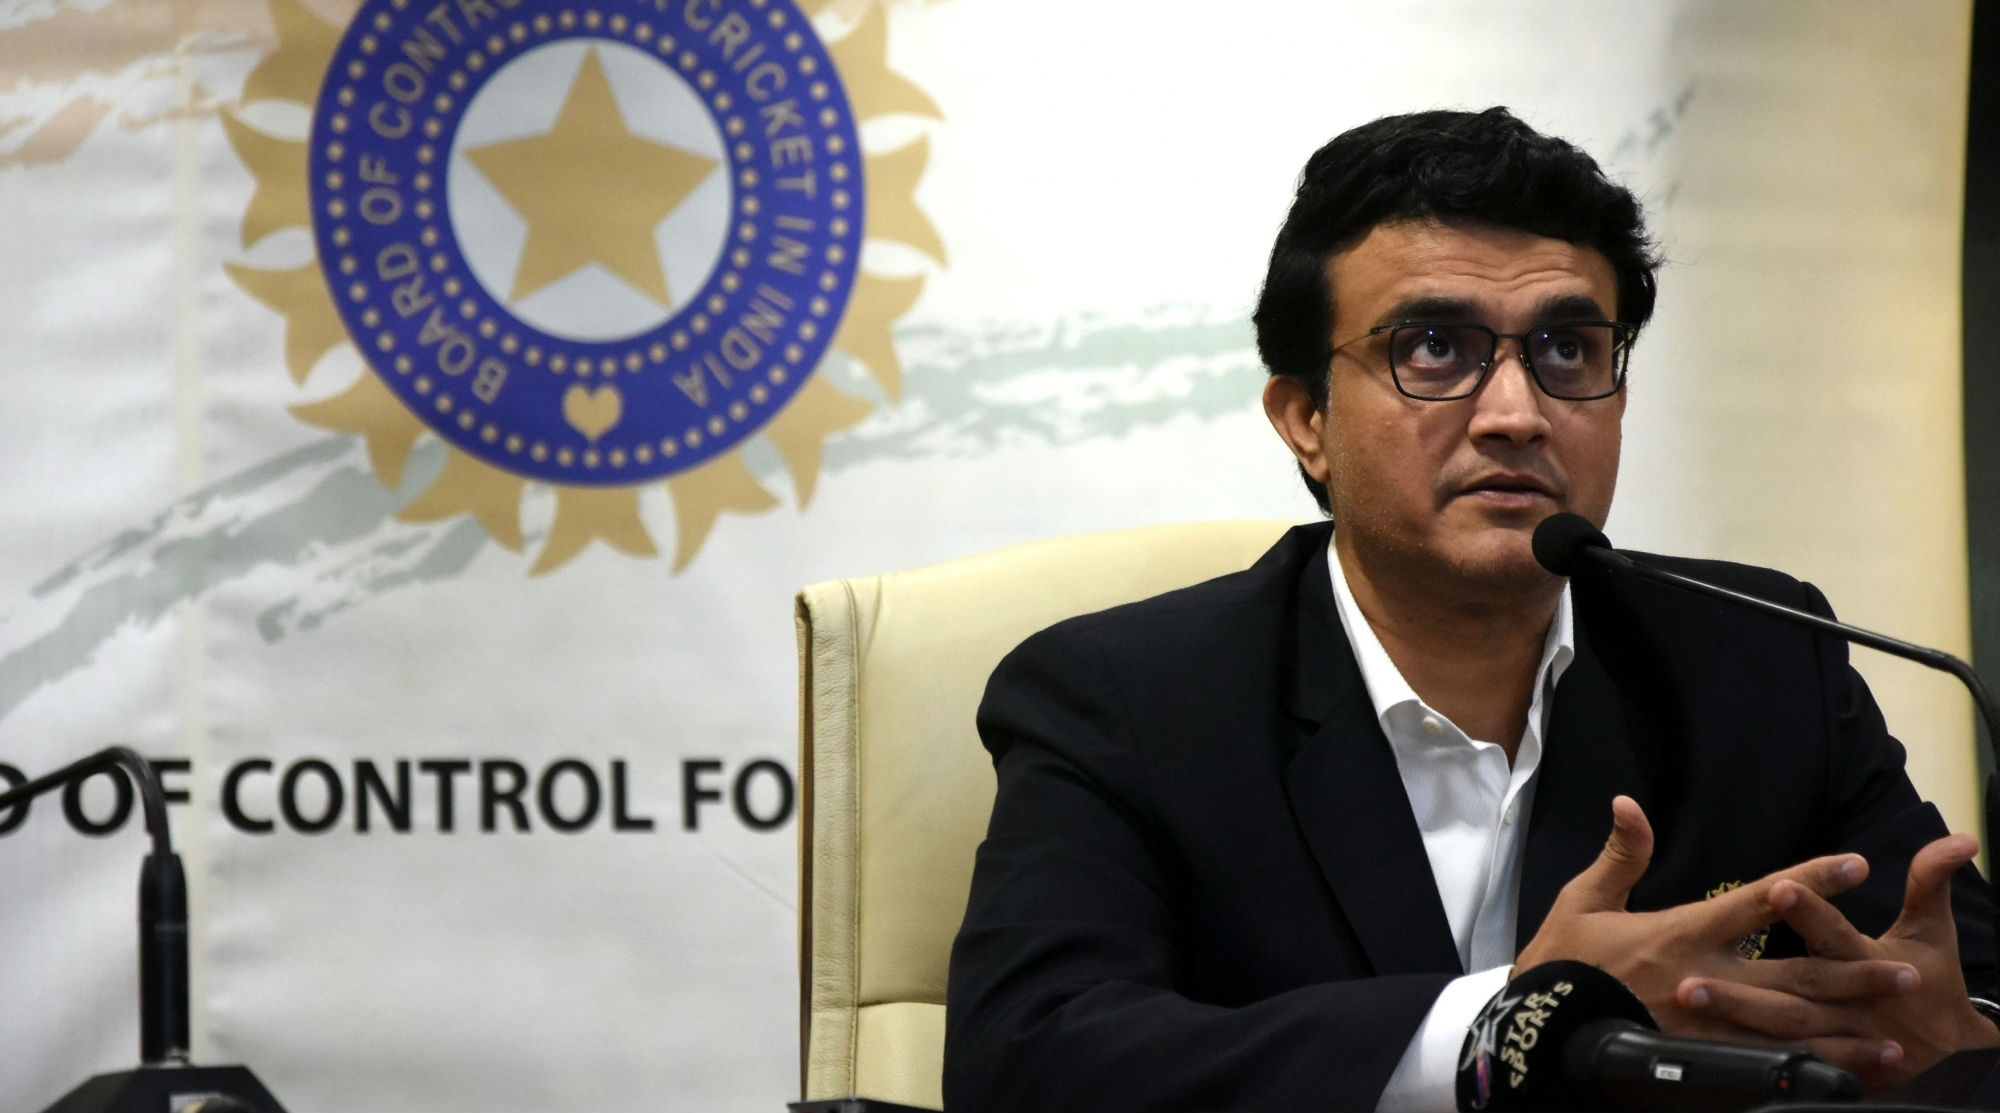 Sourav Ganguly Opens Up to Rishabh Pant Losing His Place to KL Rahul in Playing XI